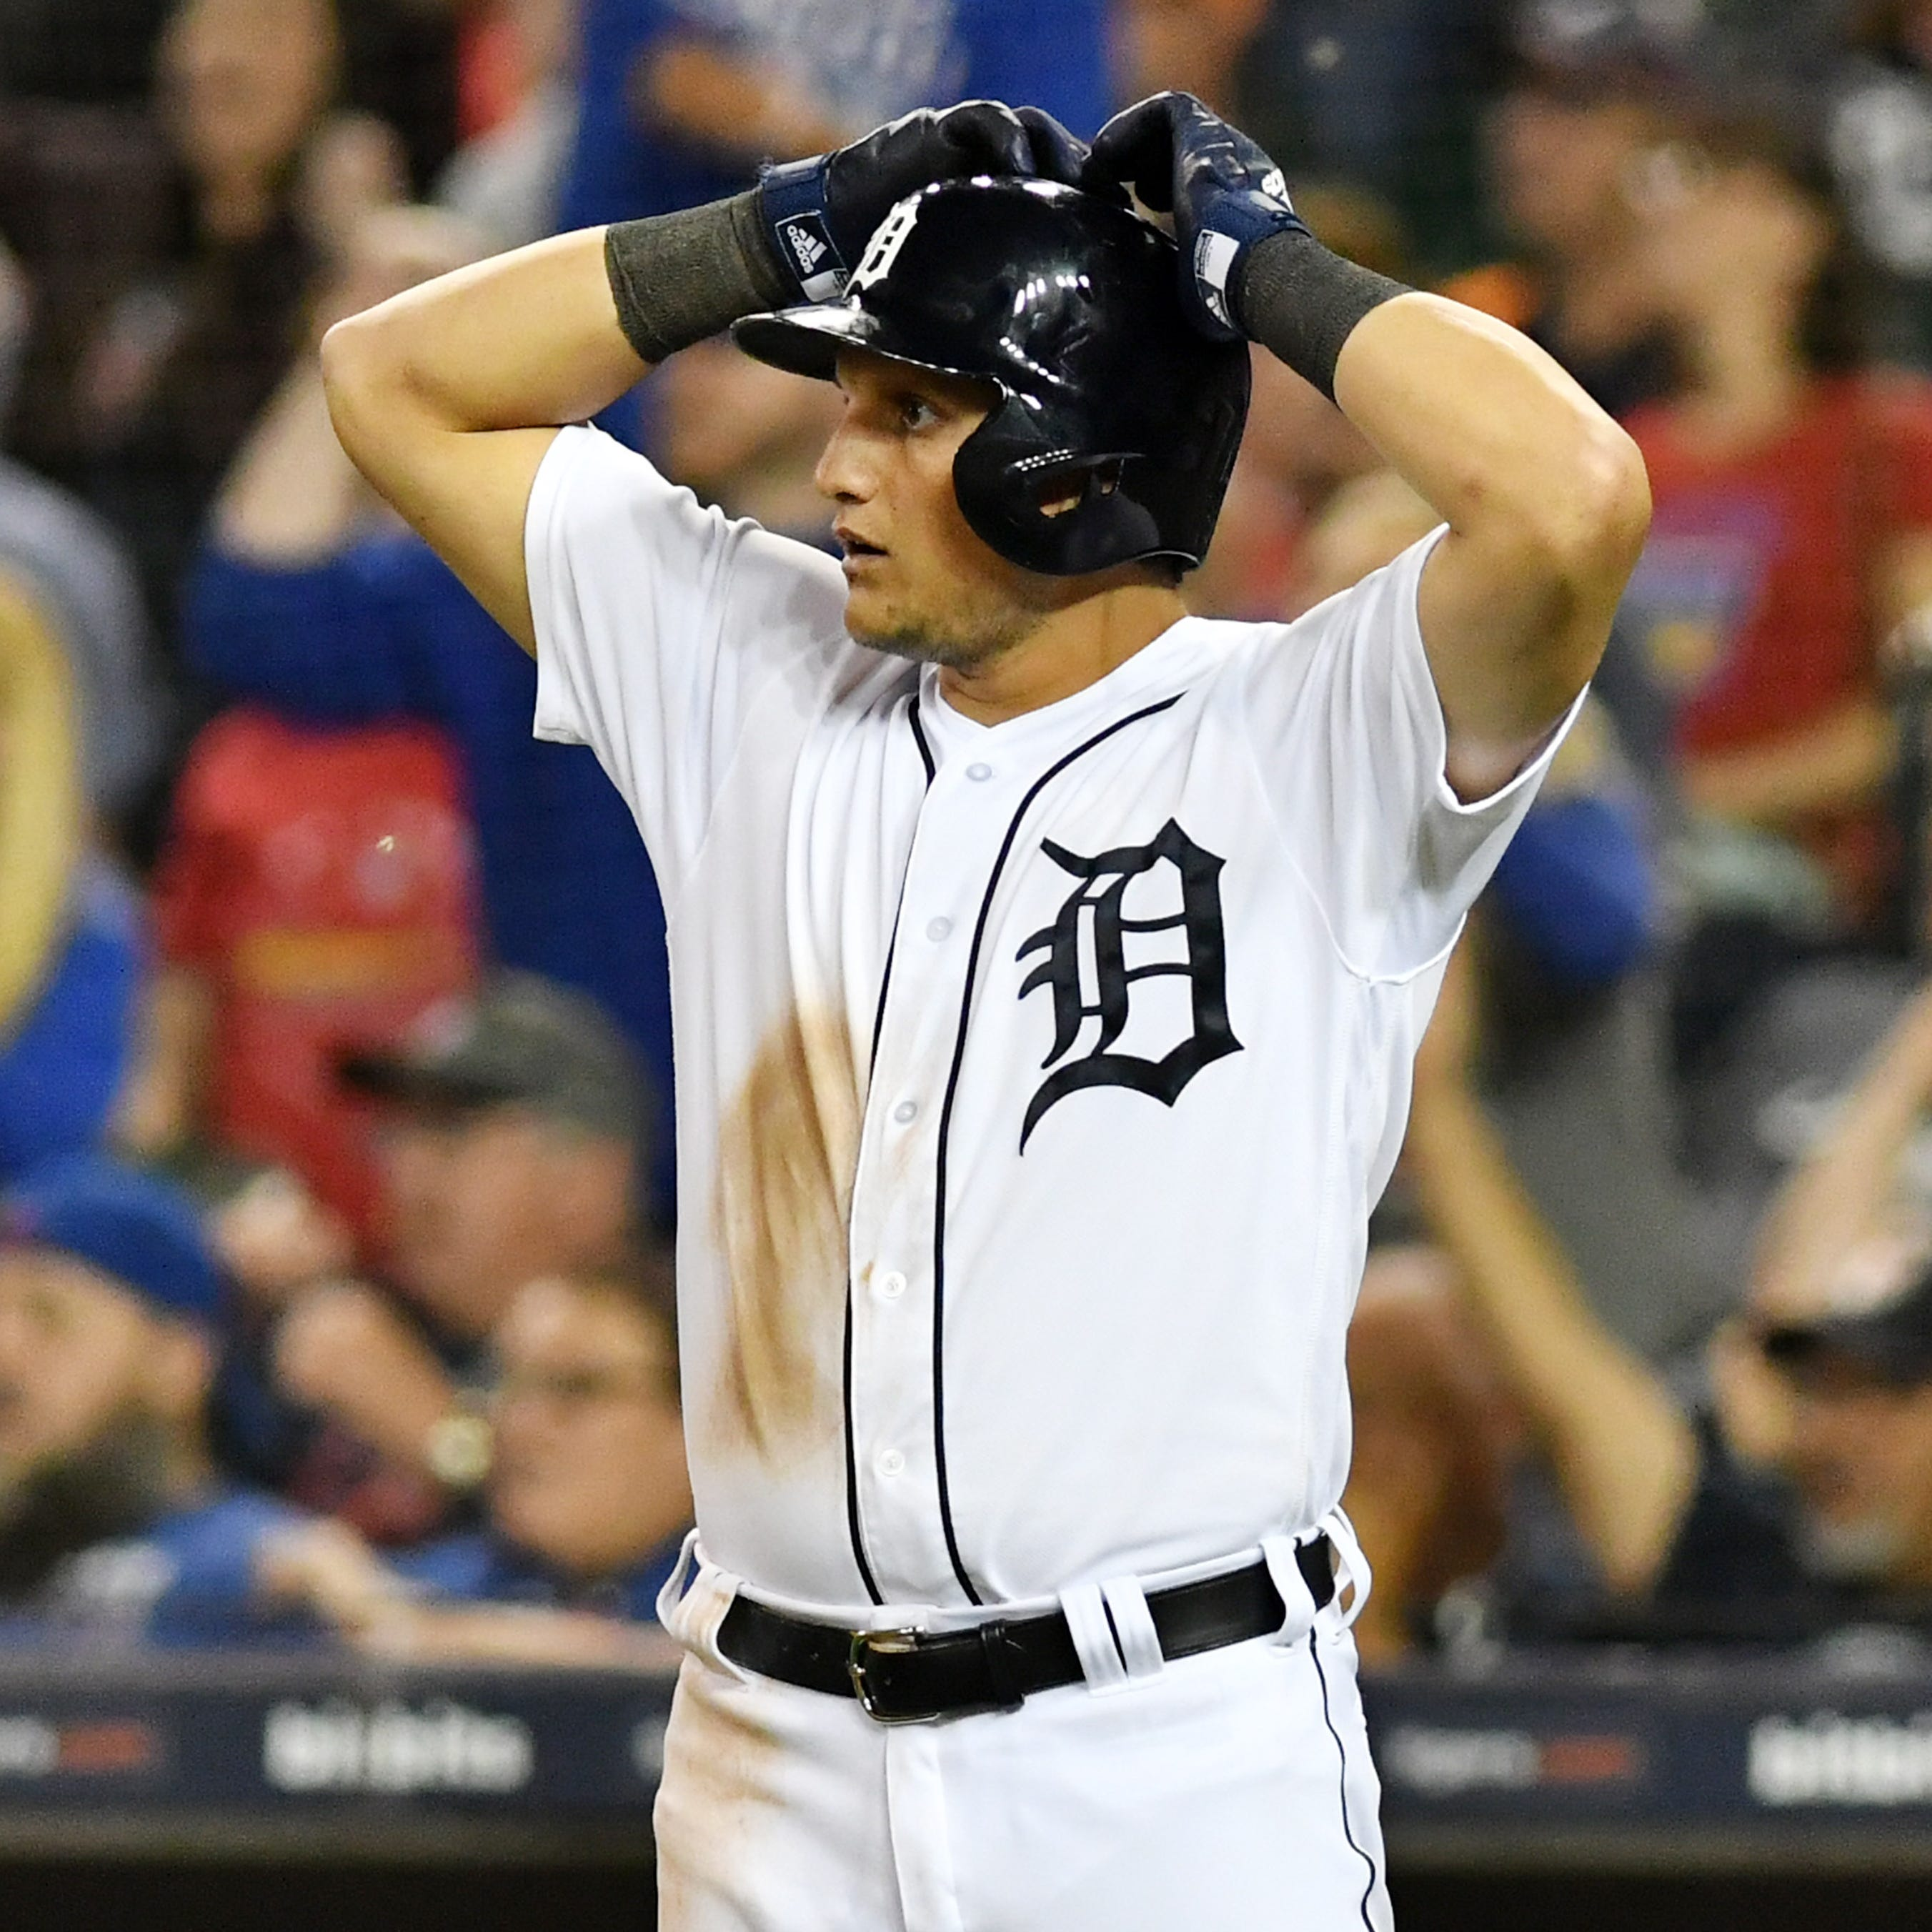 Tigers activate JaCoby Jones, Castellanos out with sprained toe